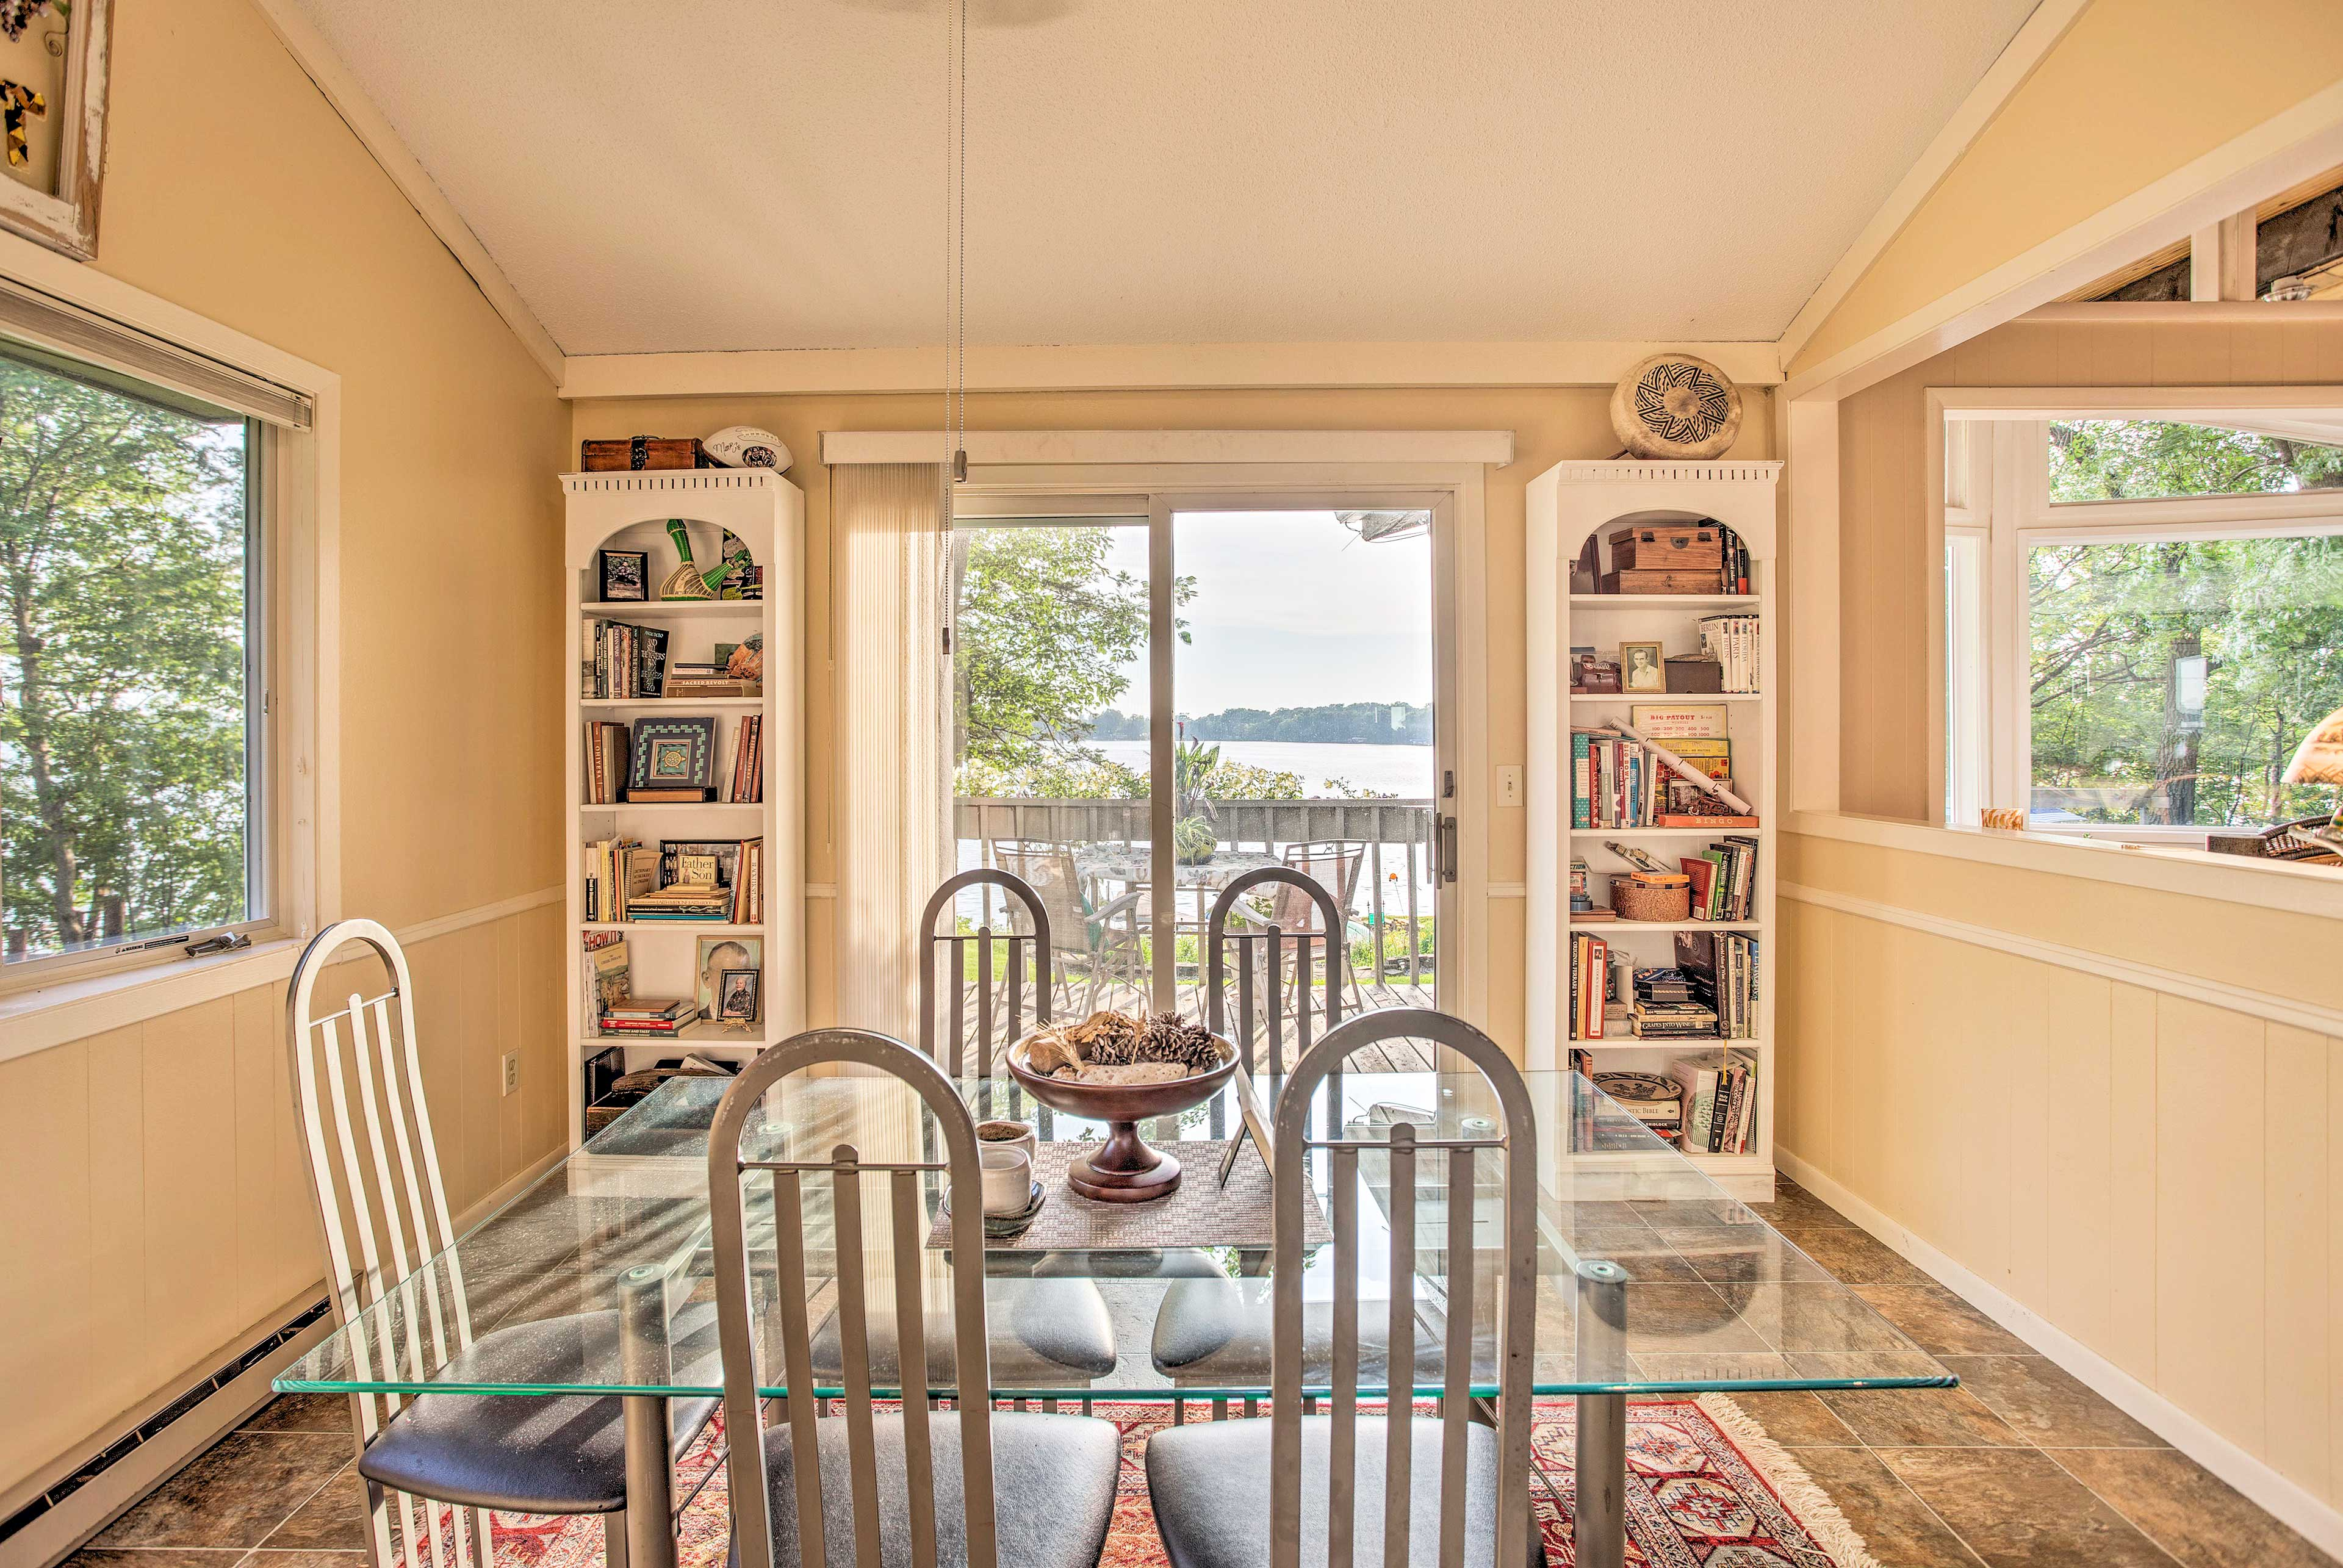 Make the most of the deck access and stocked, built-in shelves.